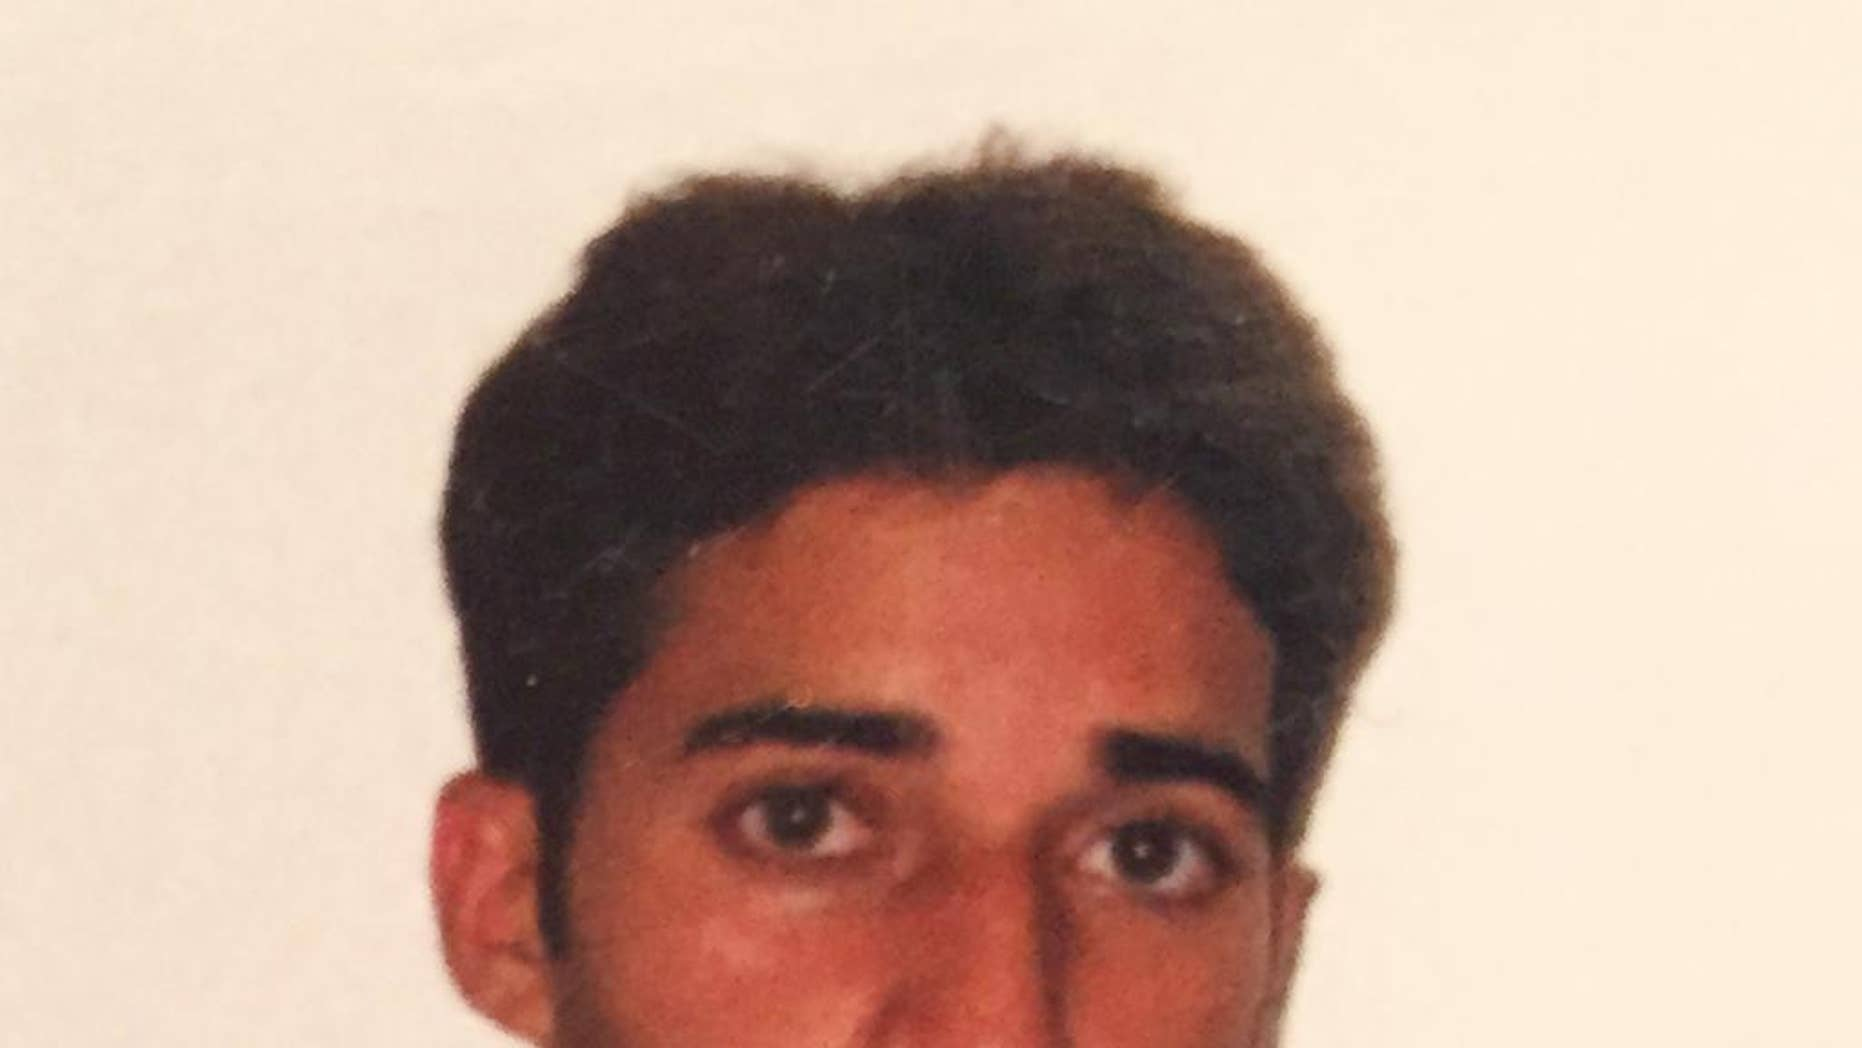 An undated photo provided by Yusuf Syed shows his brother, Adnan Syed. Adnan Syed, now 34, was sentenced to life in prison after he was convicted in 2000 of killing his Woodlawn High School classmate and former girlfriend Hae Min Lee. Serial, a popular podcast, is re-investigating the 15-year-old case in one-hour segments told in almost real-time and raising questions about whether or not Syed committed the crime. Meanwhile, Syed's post-conviction appeal is now with Maryland's Court of Special Appeals. (AP Photo/Courtesy of Yusuf Syed)